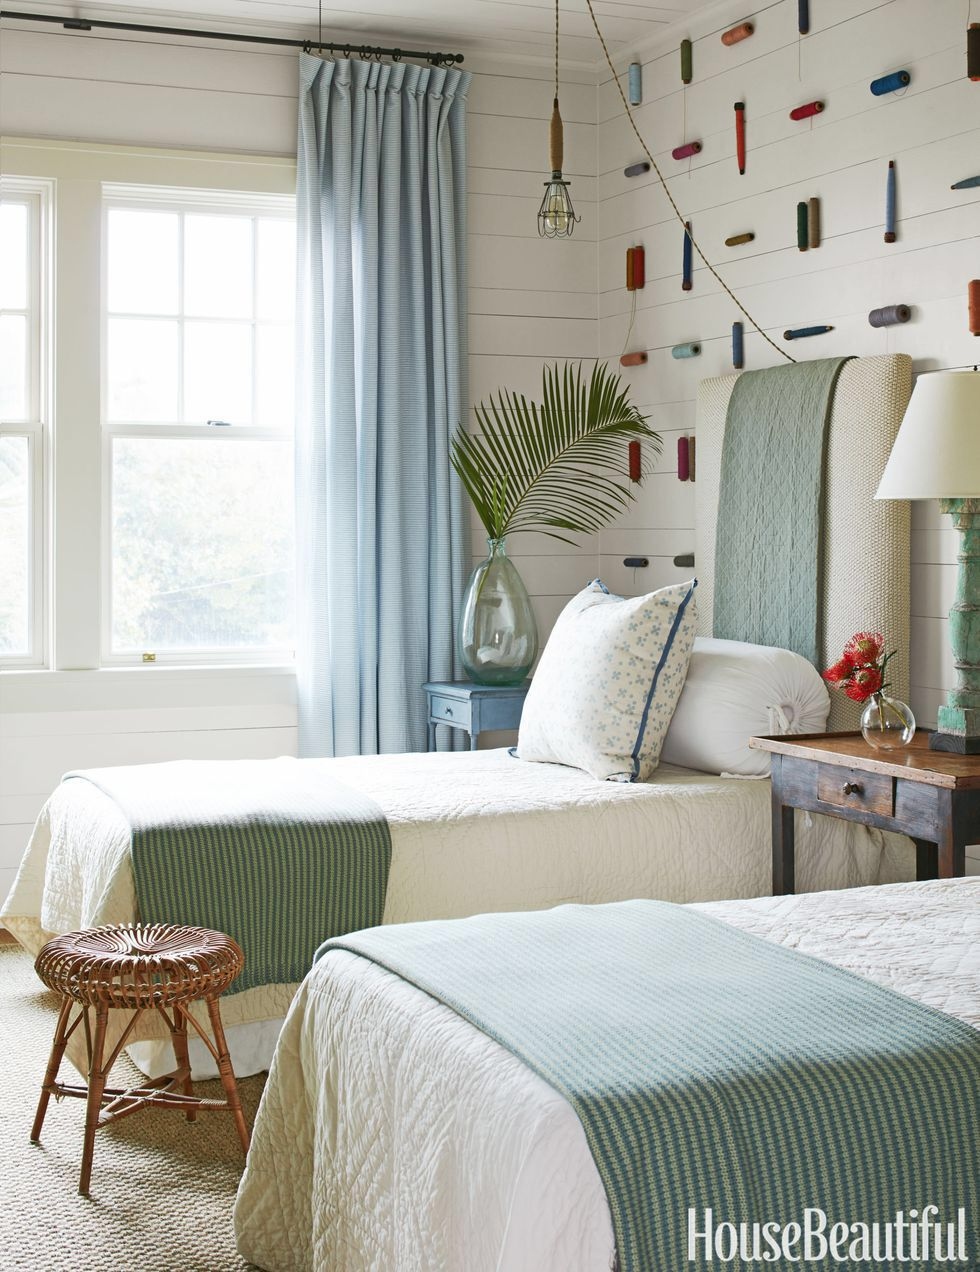 Statement decor in a florida guest bedroom designer tammy connor covered twin headboards in matteos nubby knot throws to amp up texture